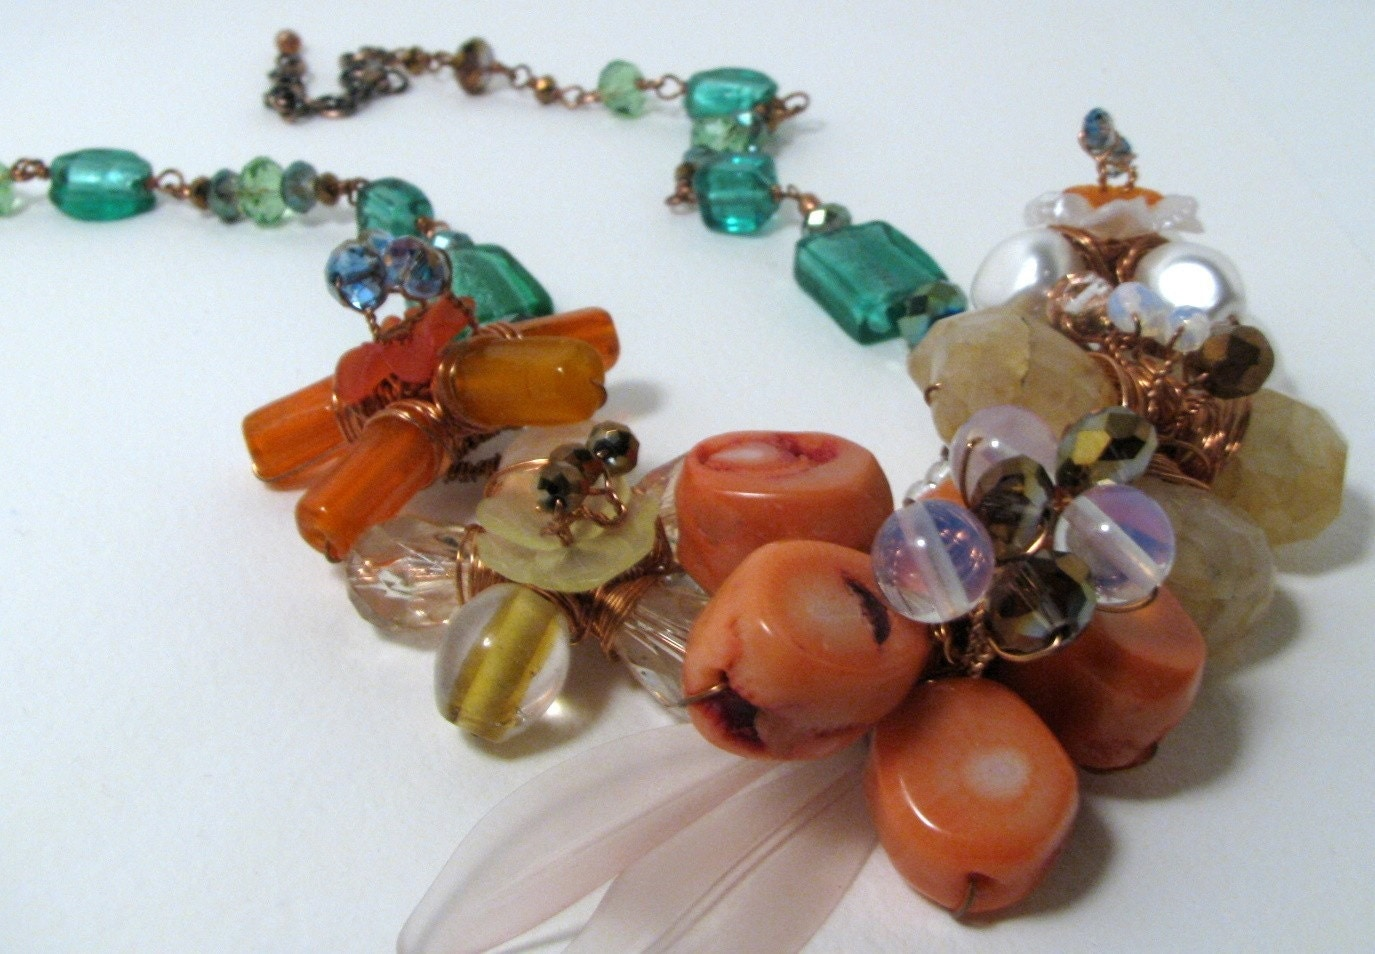 Spring to Life Wire Wrapped 5 Flowers Necklaces/Earrings Set (Coral, chalcedony, peach, orange, green)